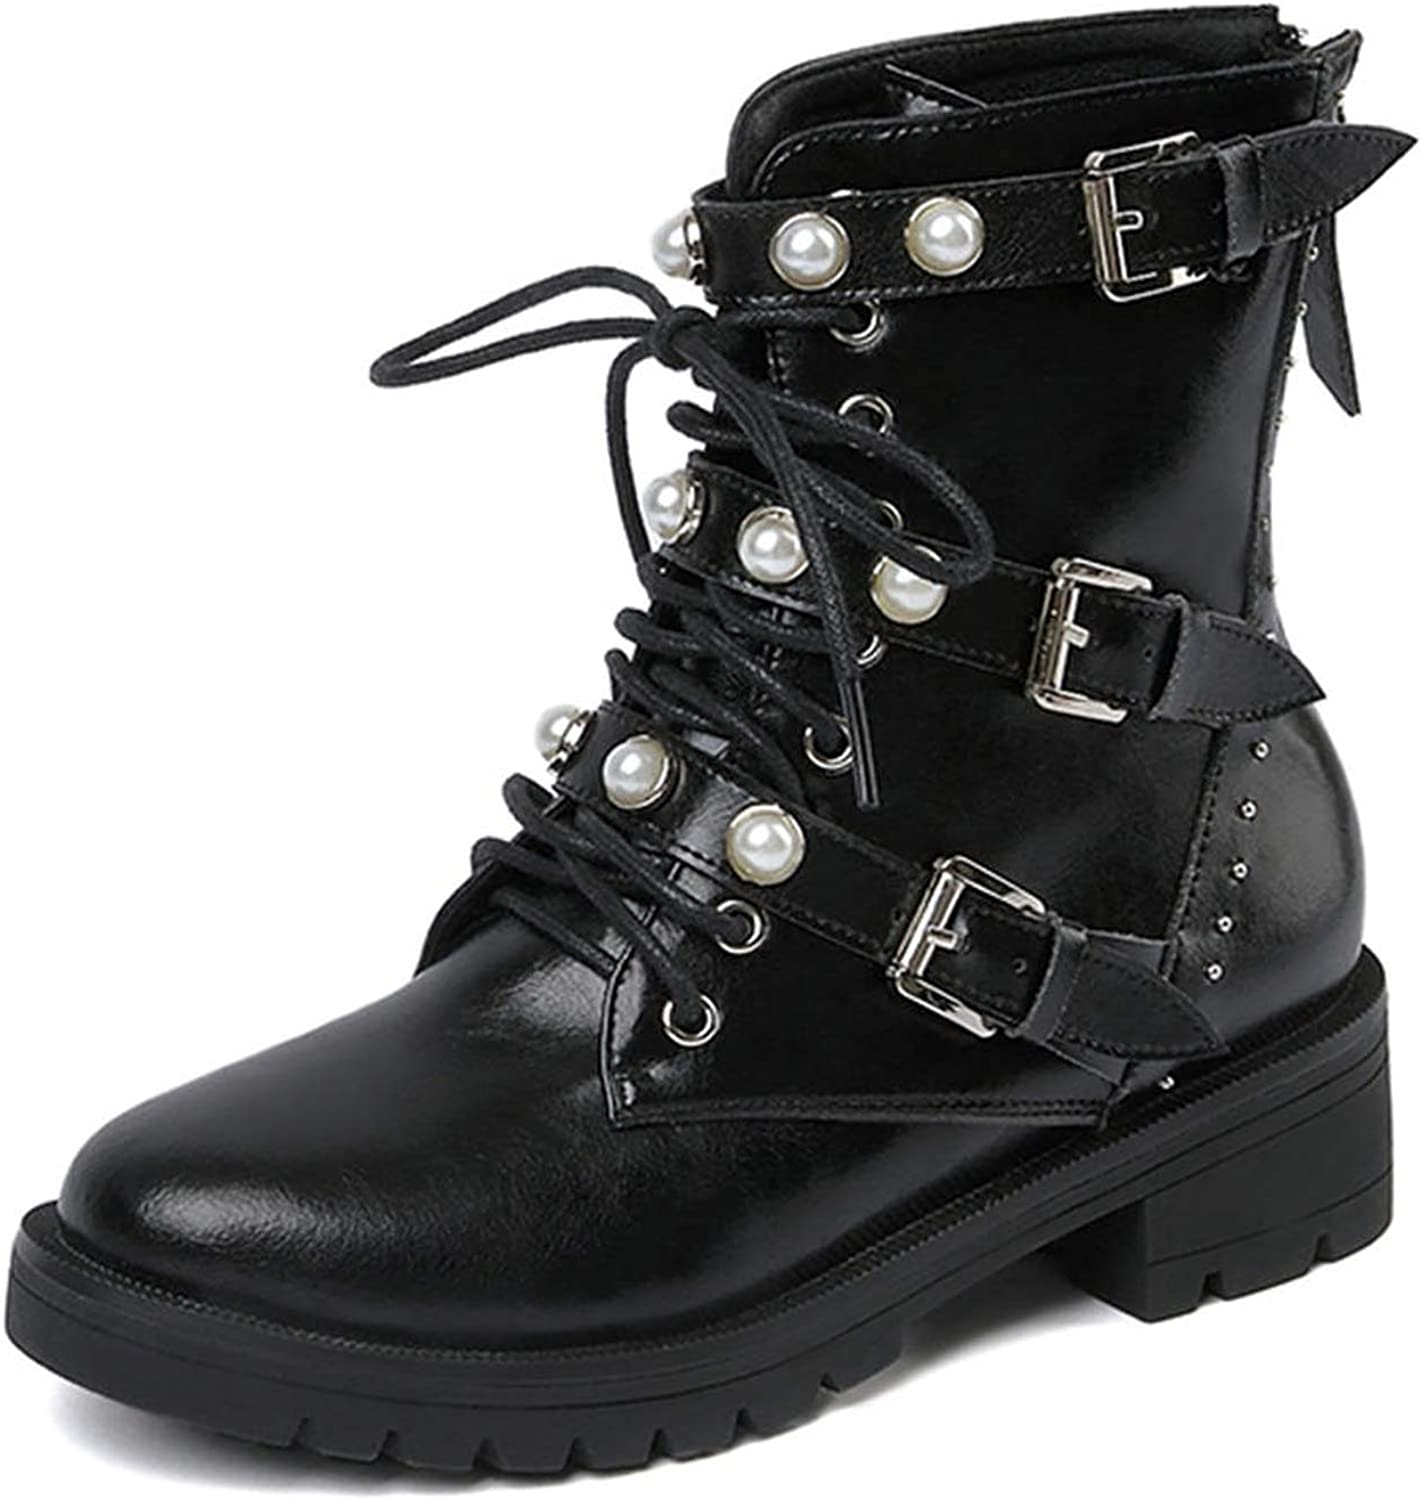 Genuine Leather Pearl Woman Boot Buckle Boots Boot Woman Female Ankle Boots